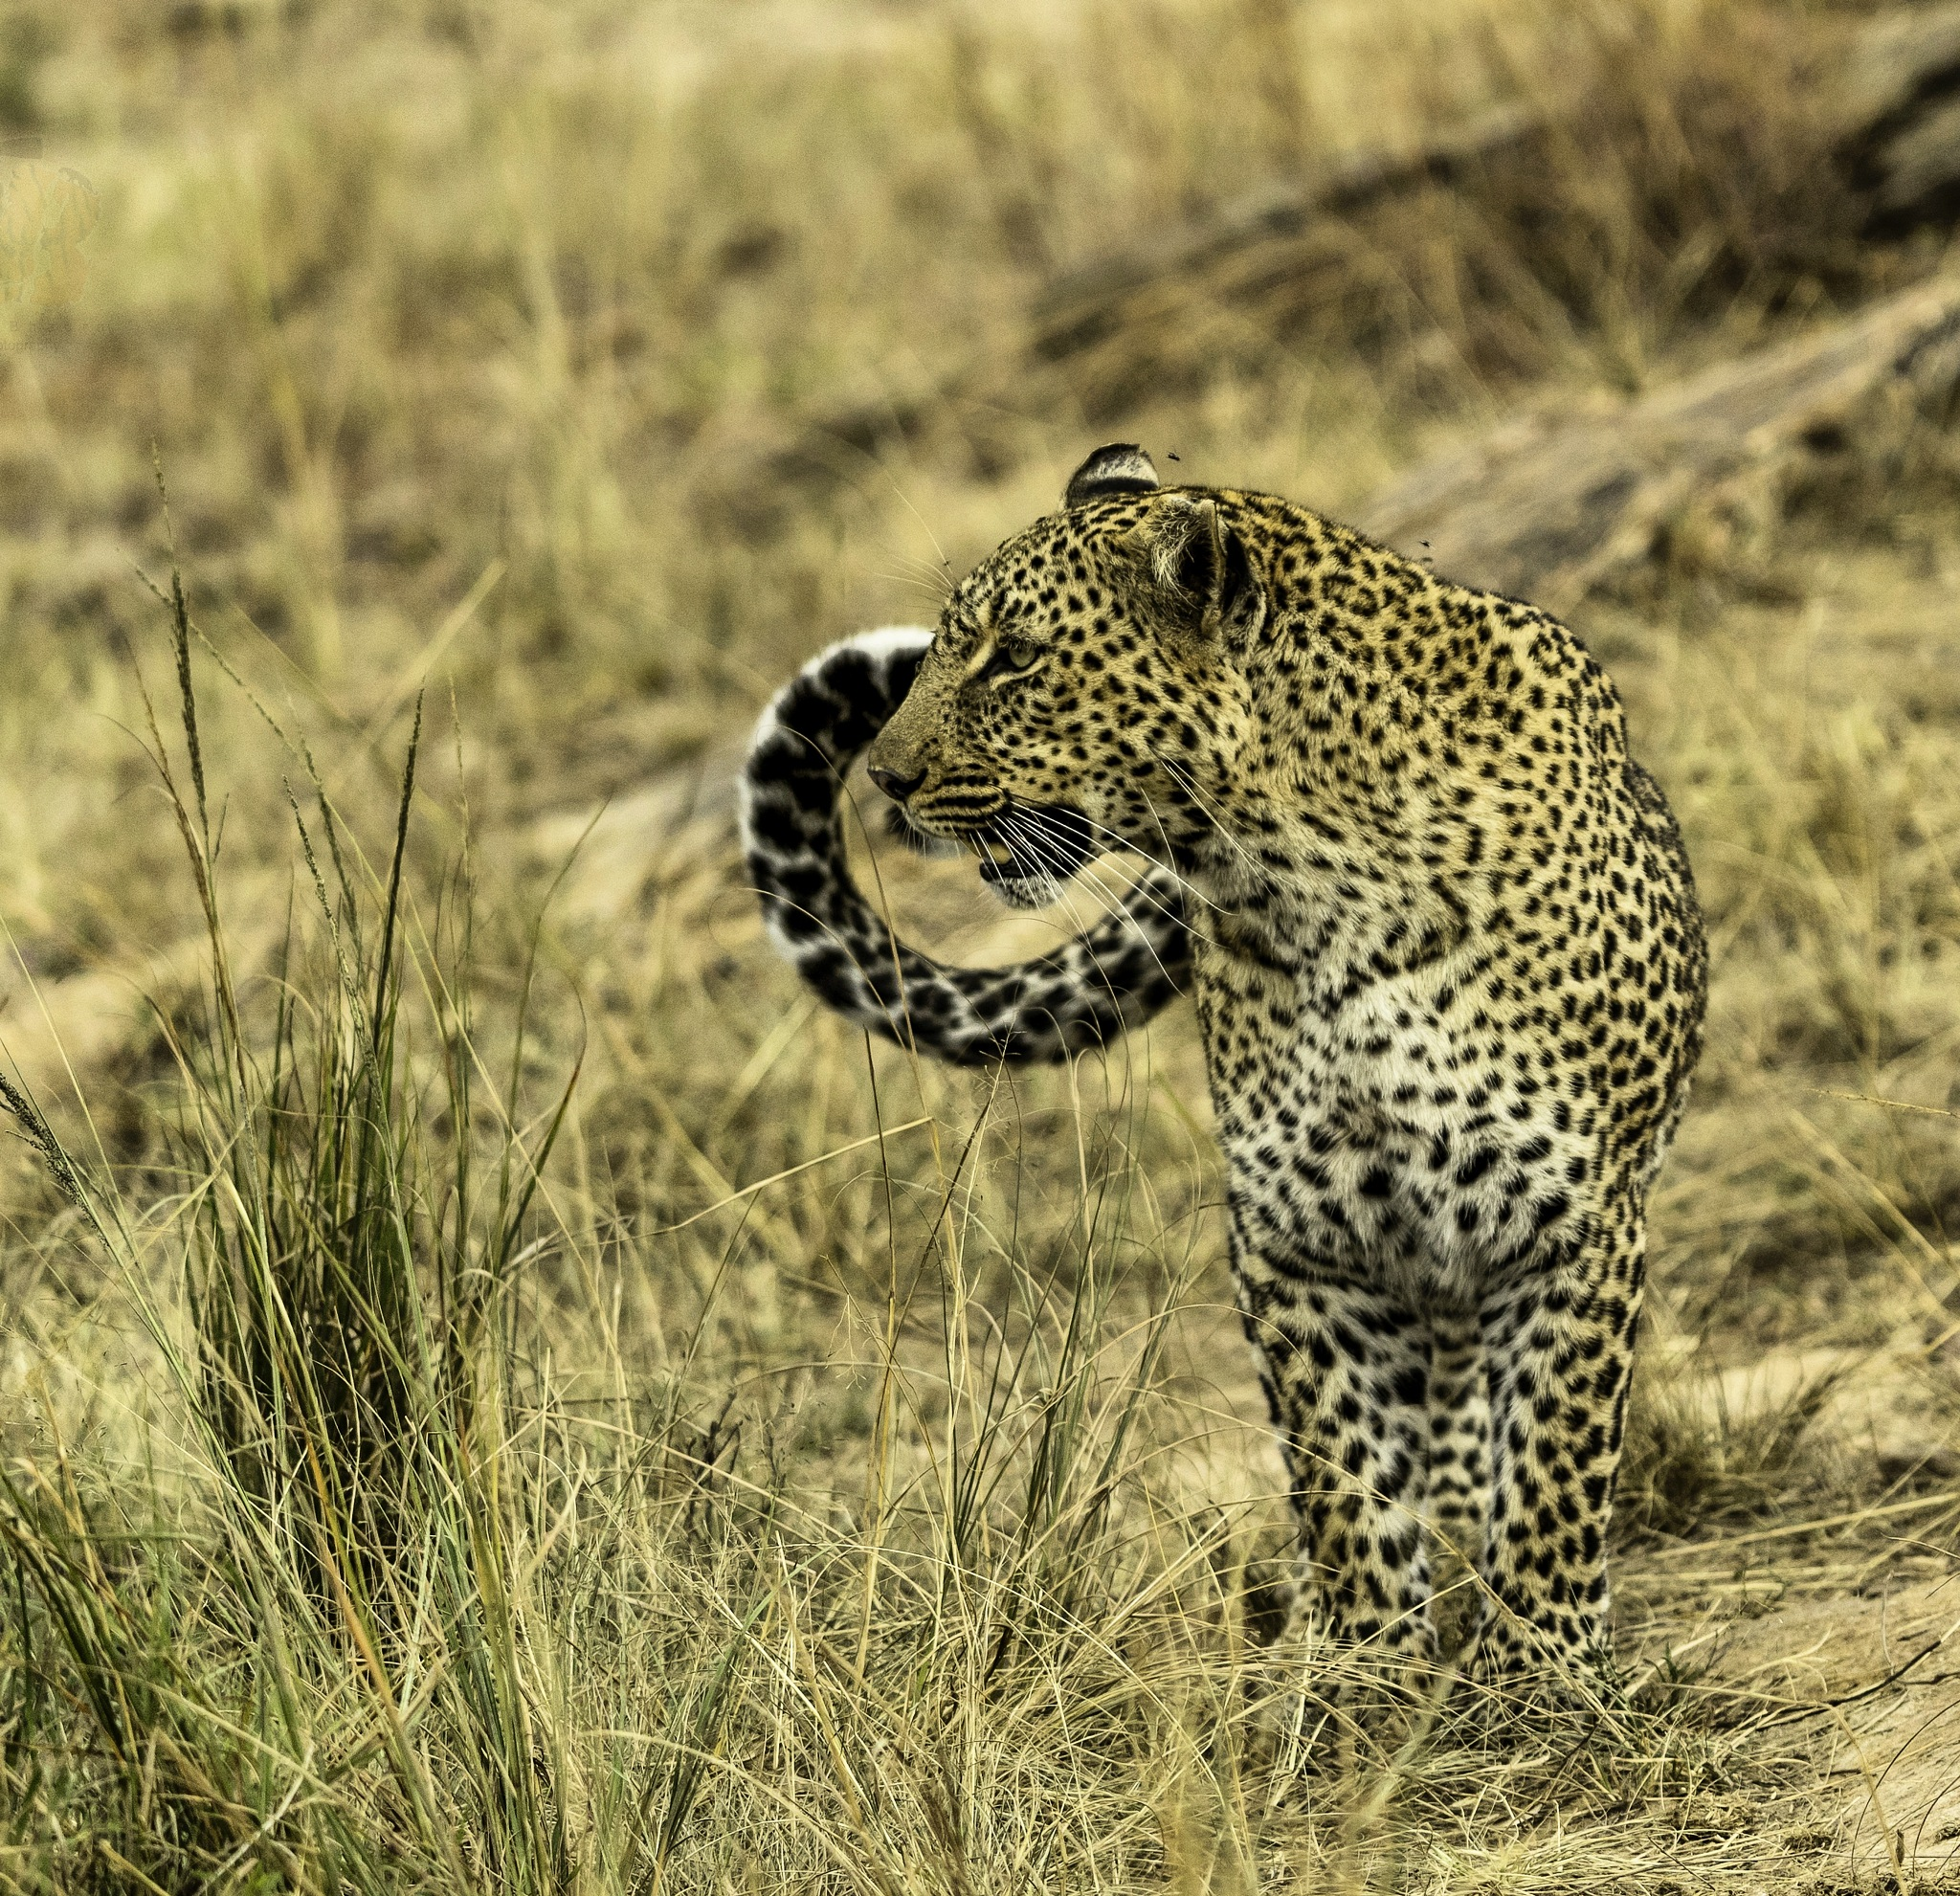 leopard watching over a gazelle  by shyambhagra